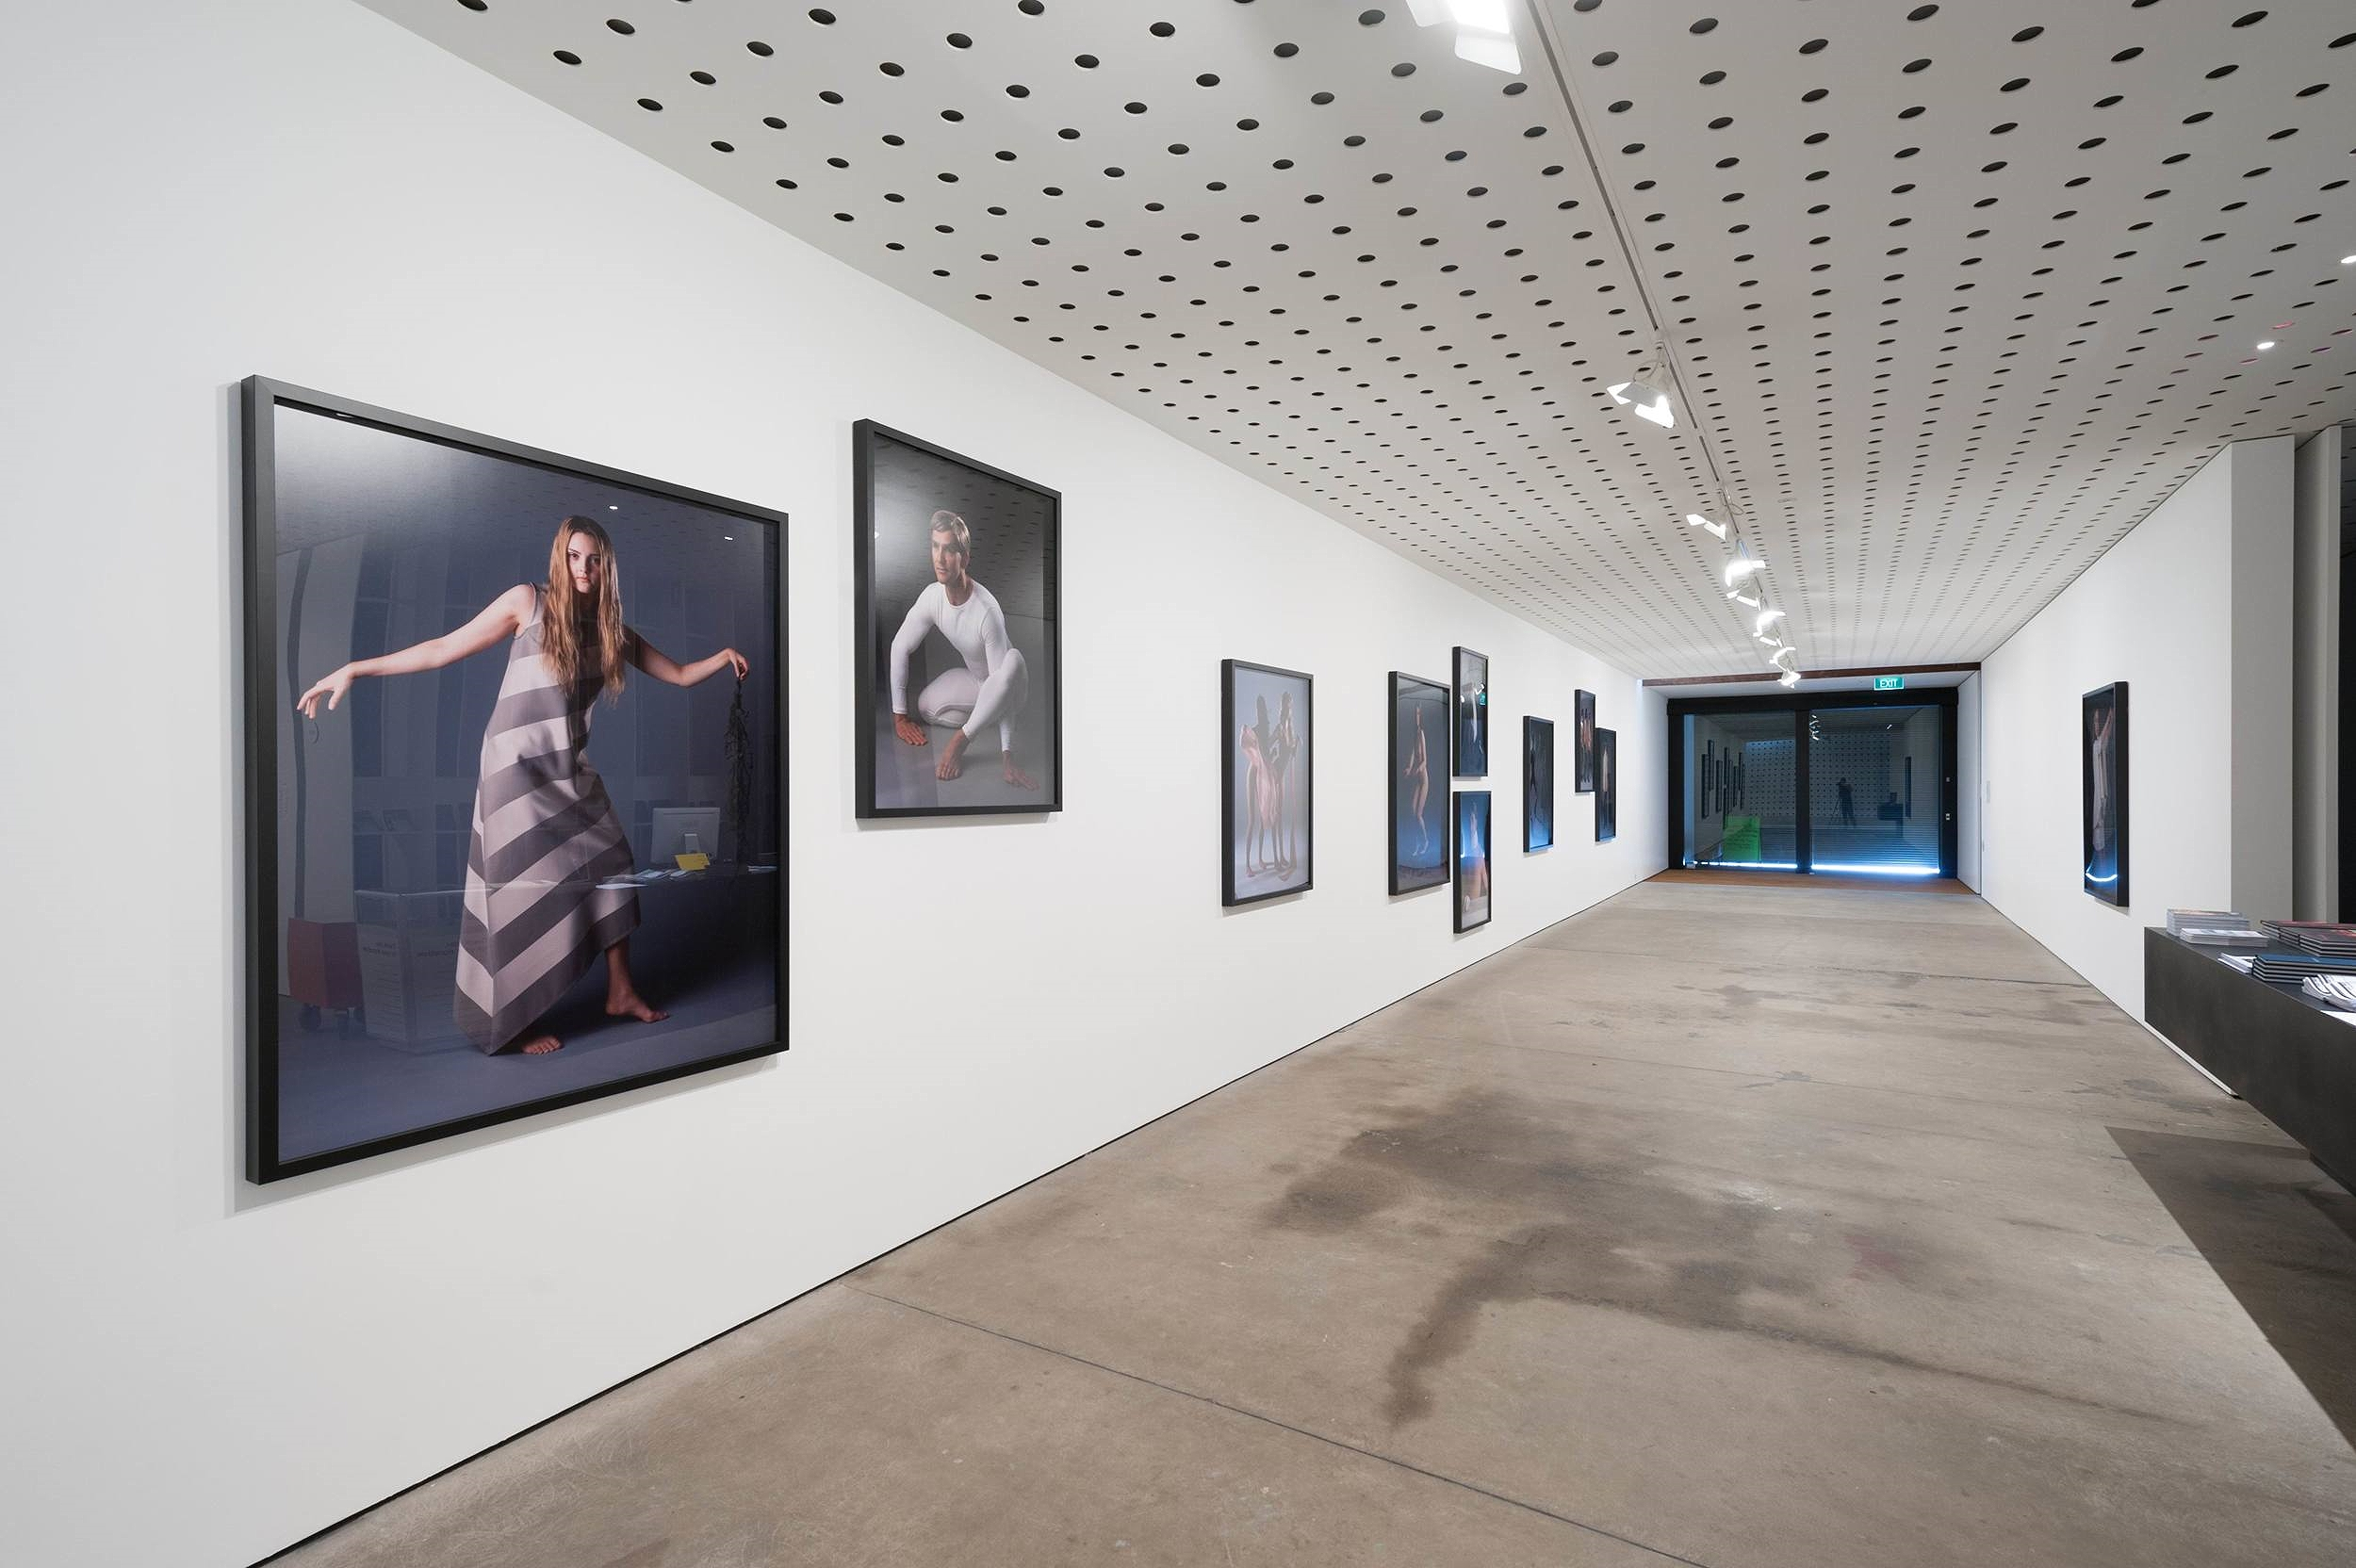 All installation photographs are by Ben Colson,2012 CCP exhibition documentation intern, supported by Manfrotto.